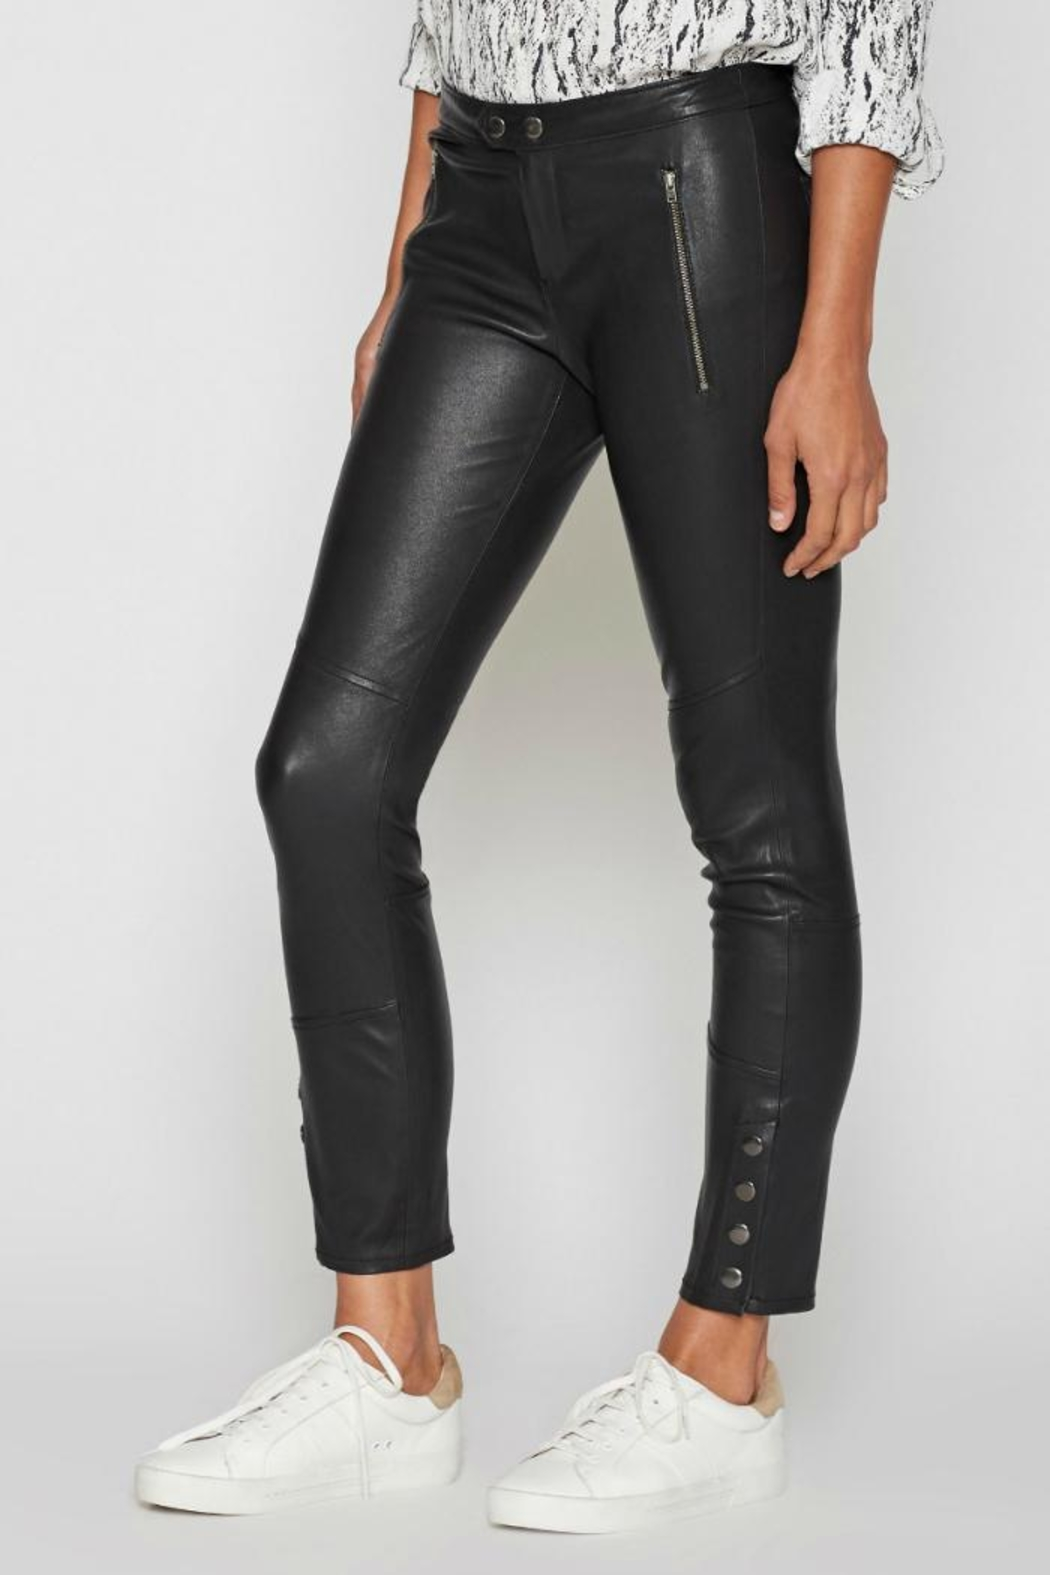 Joie Darnella Leather Pants - Front Full Image